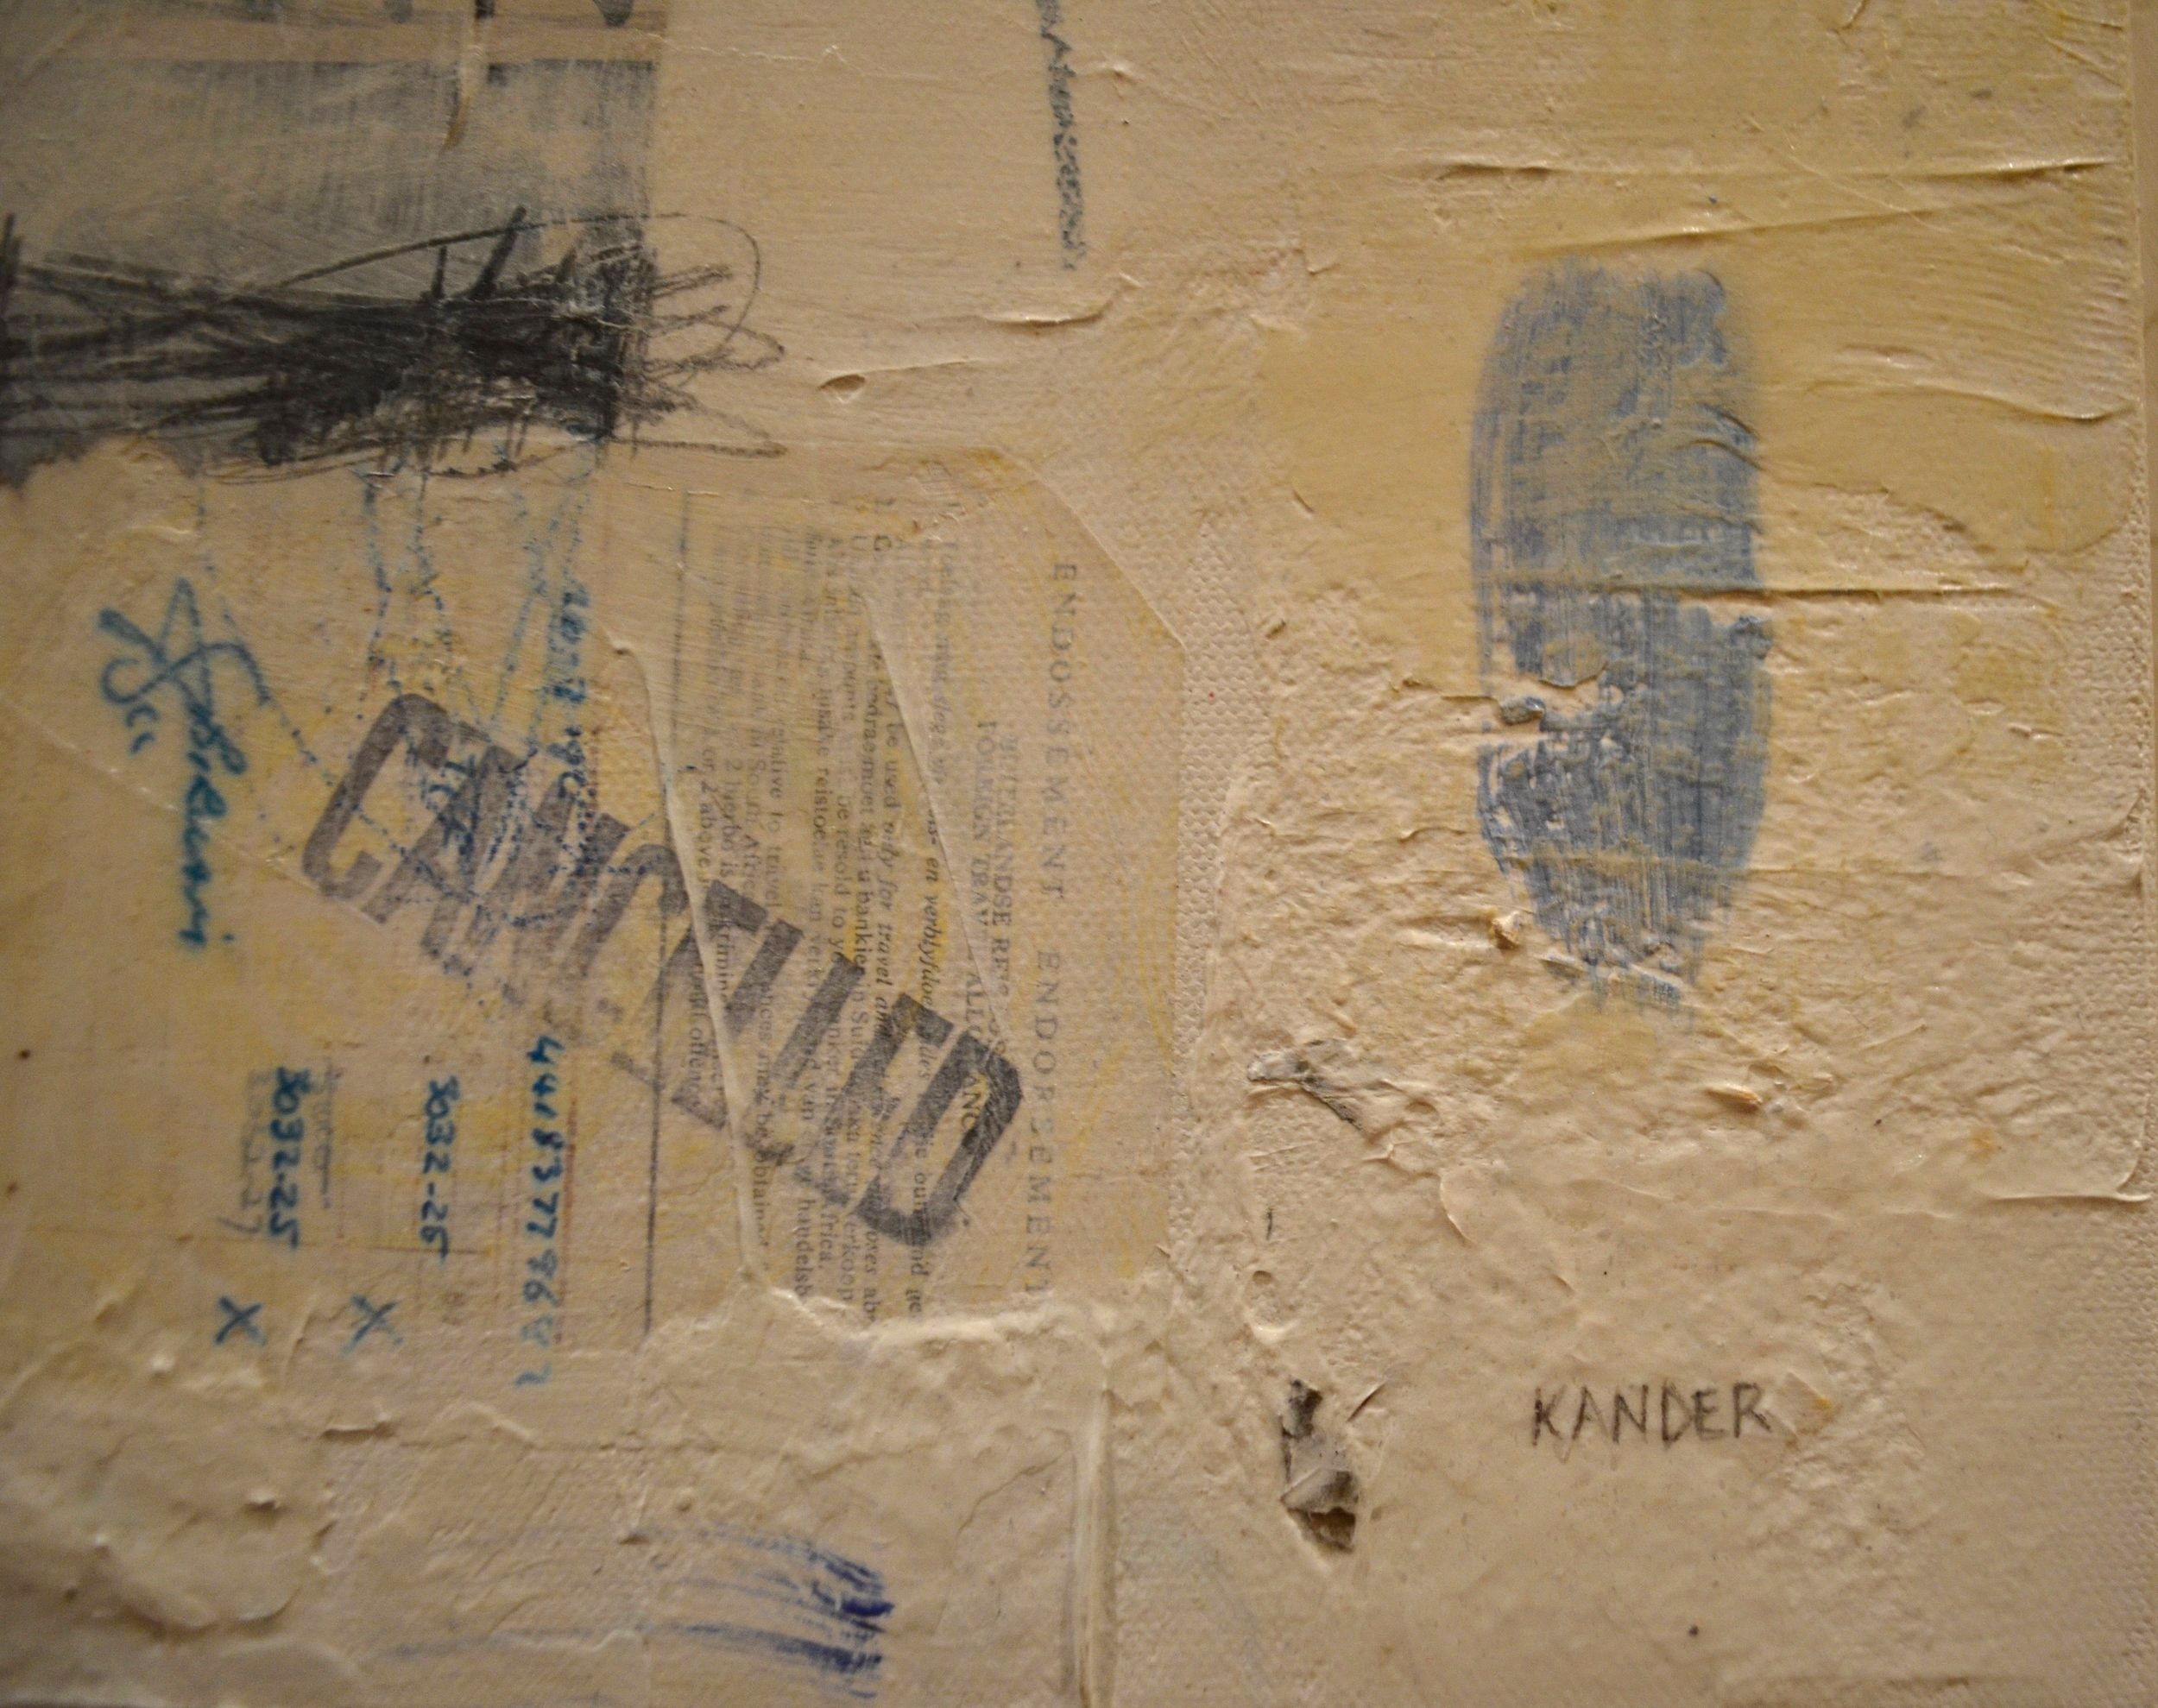 mixed media on canvas by tamar kander, human touch, texture close up images